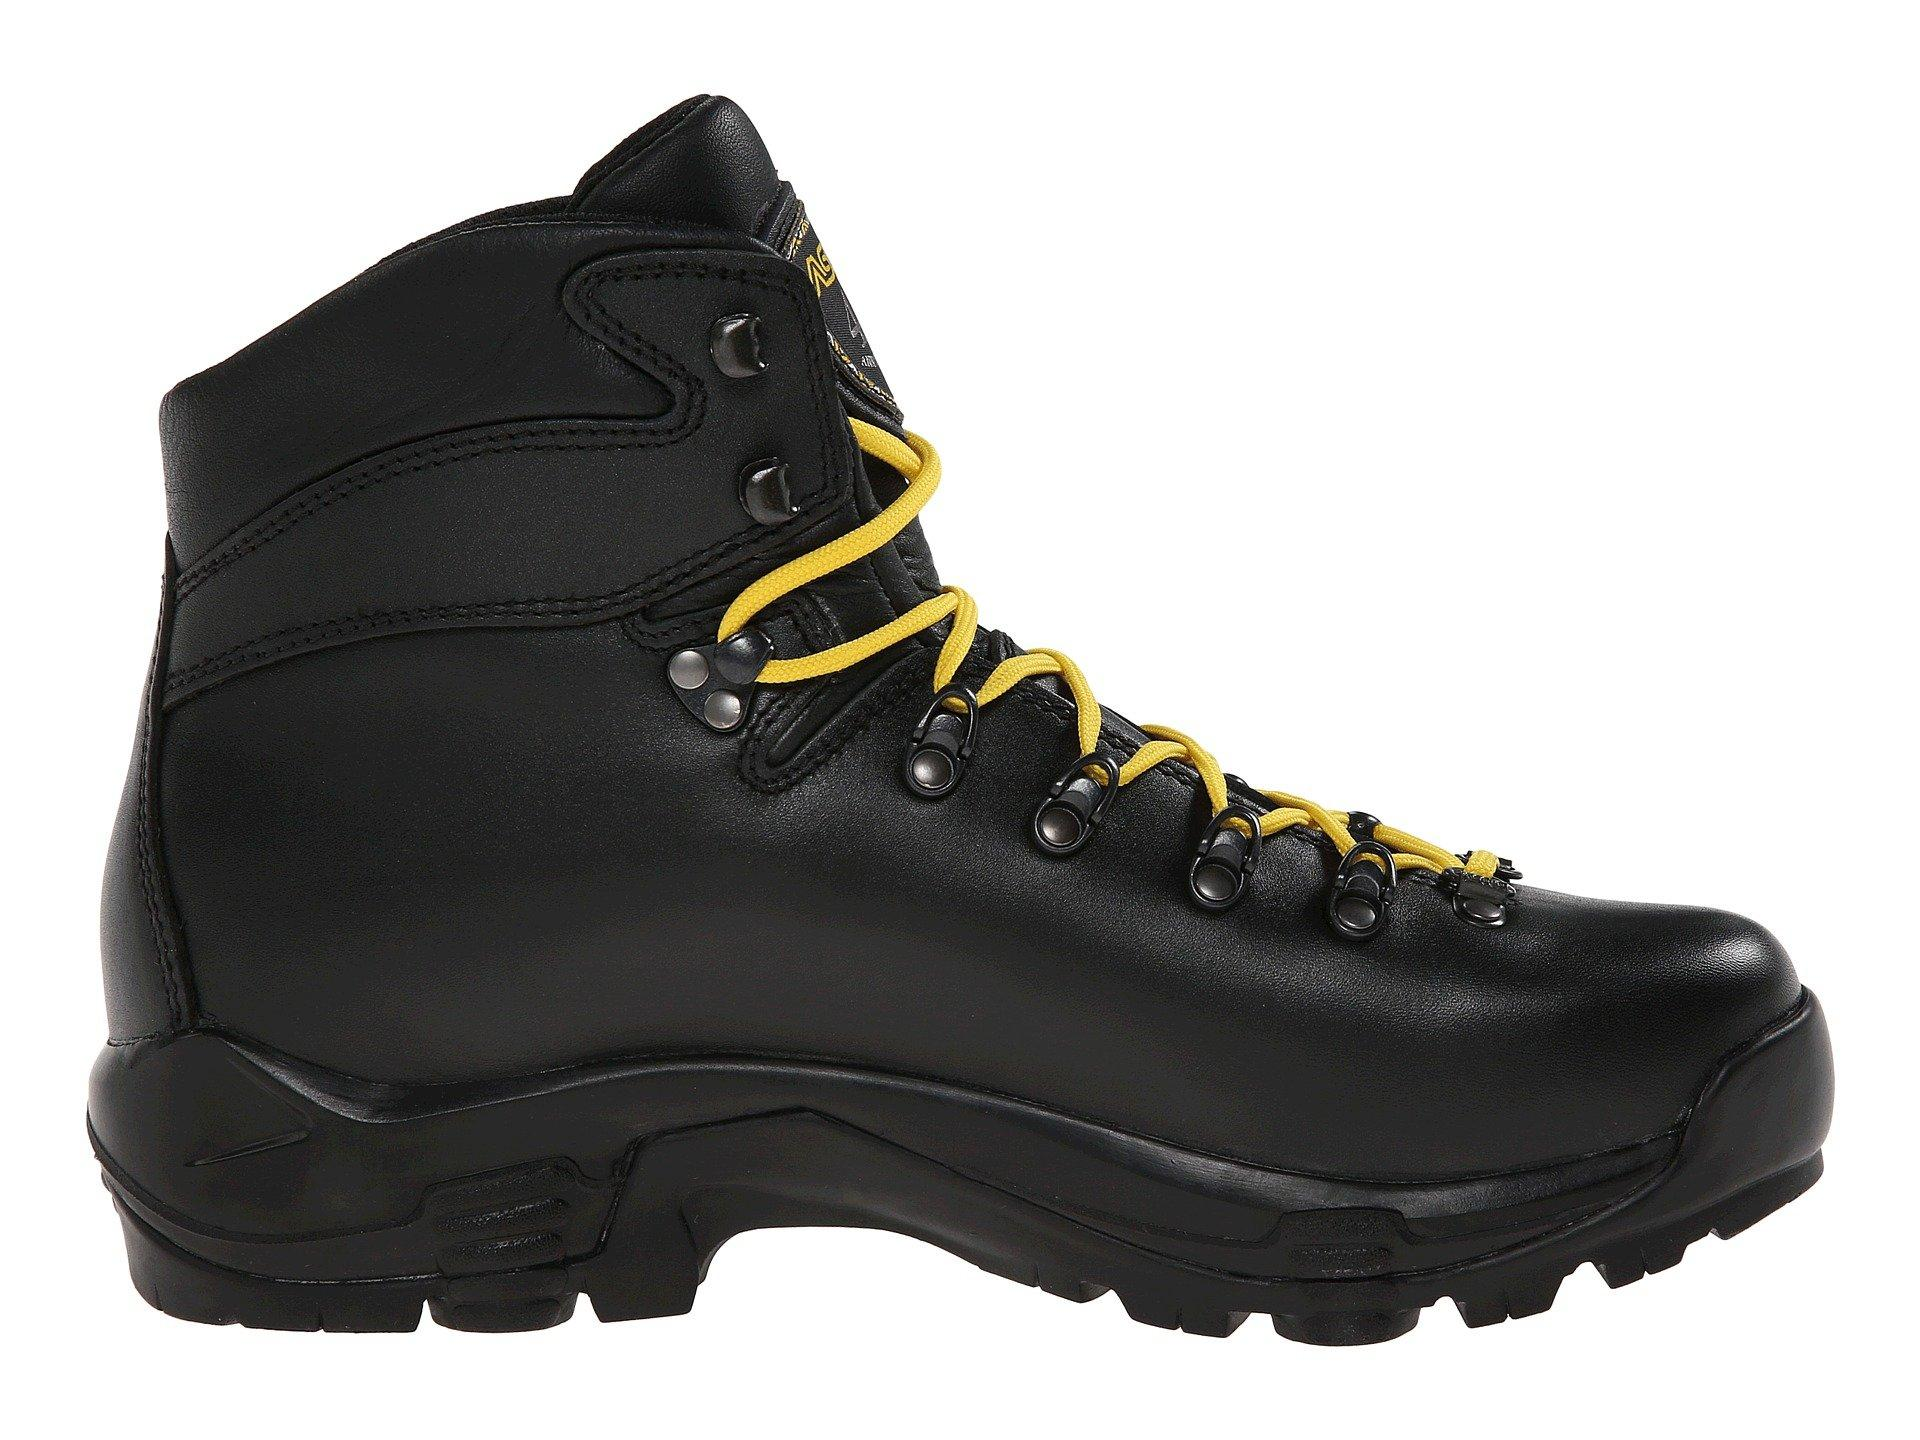 Asolo Leather Tps 520 Gv Black Men S Hiking Boots For